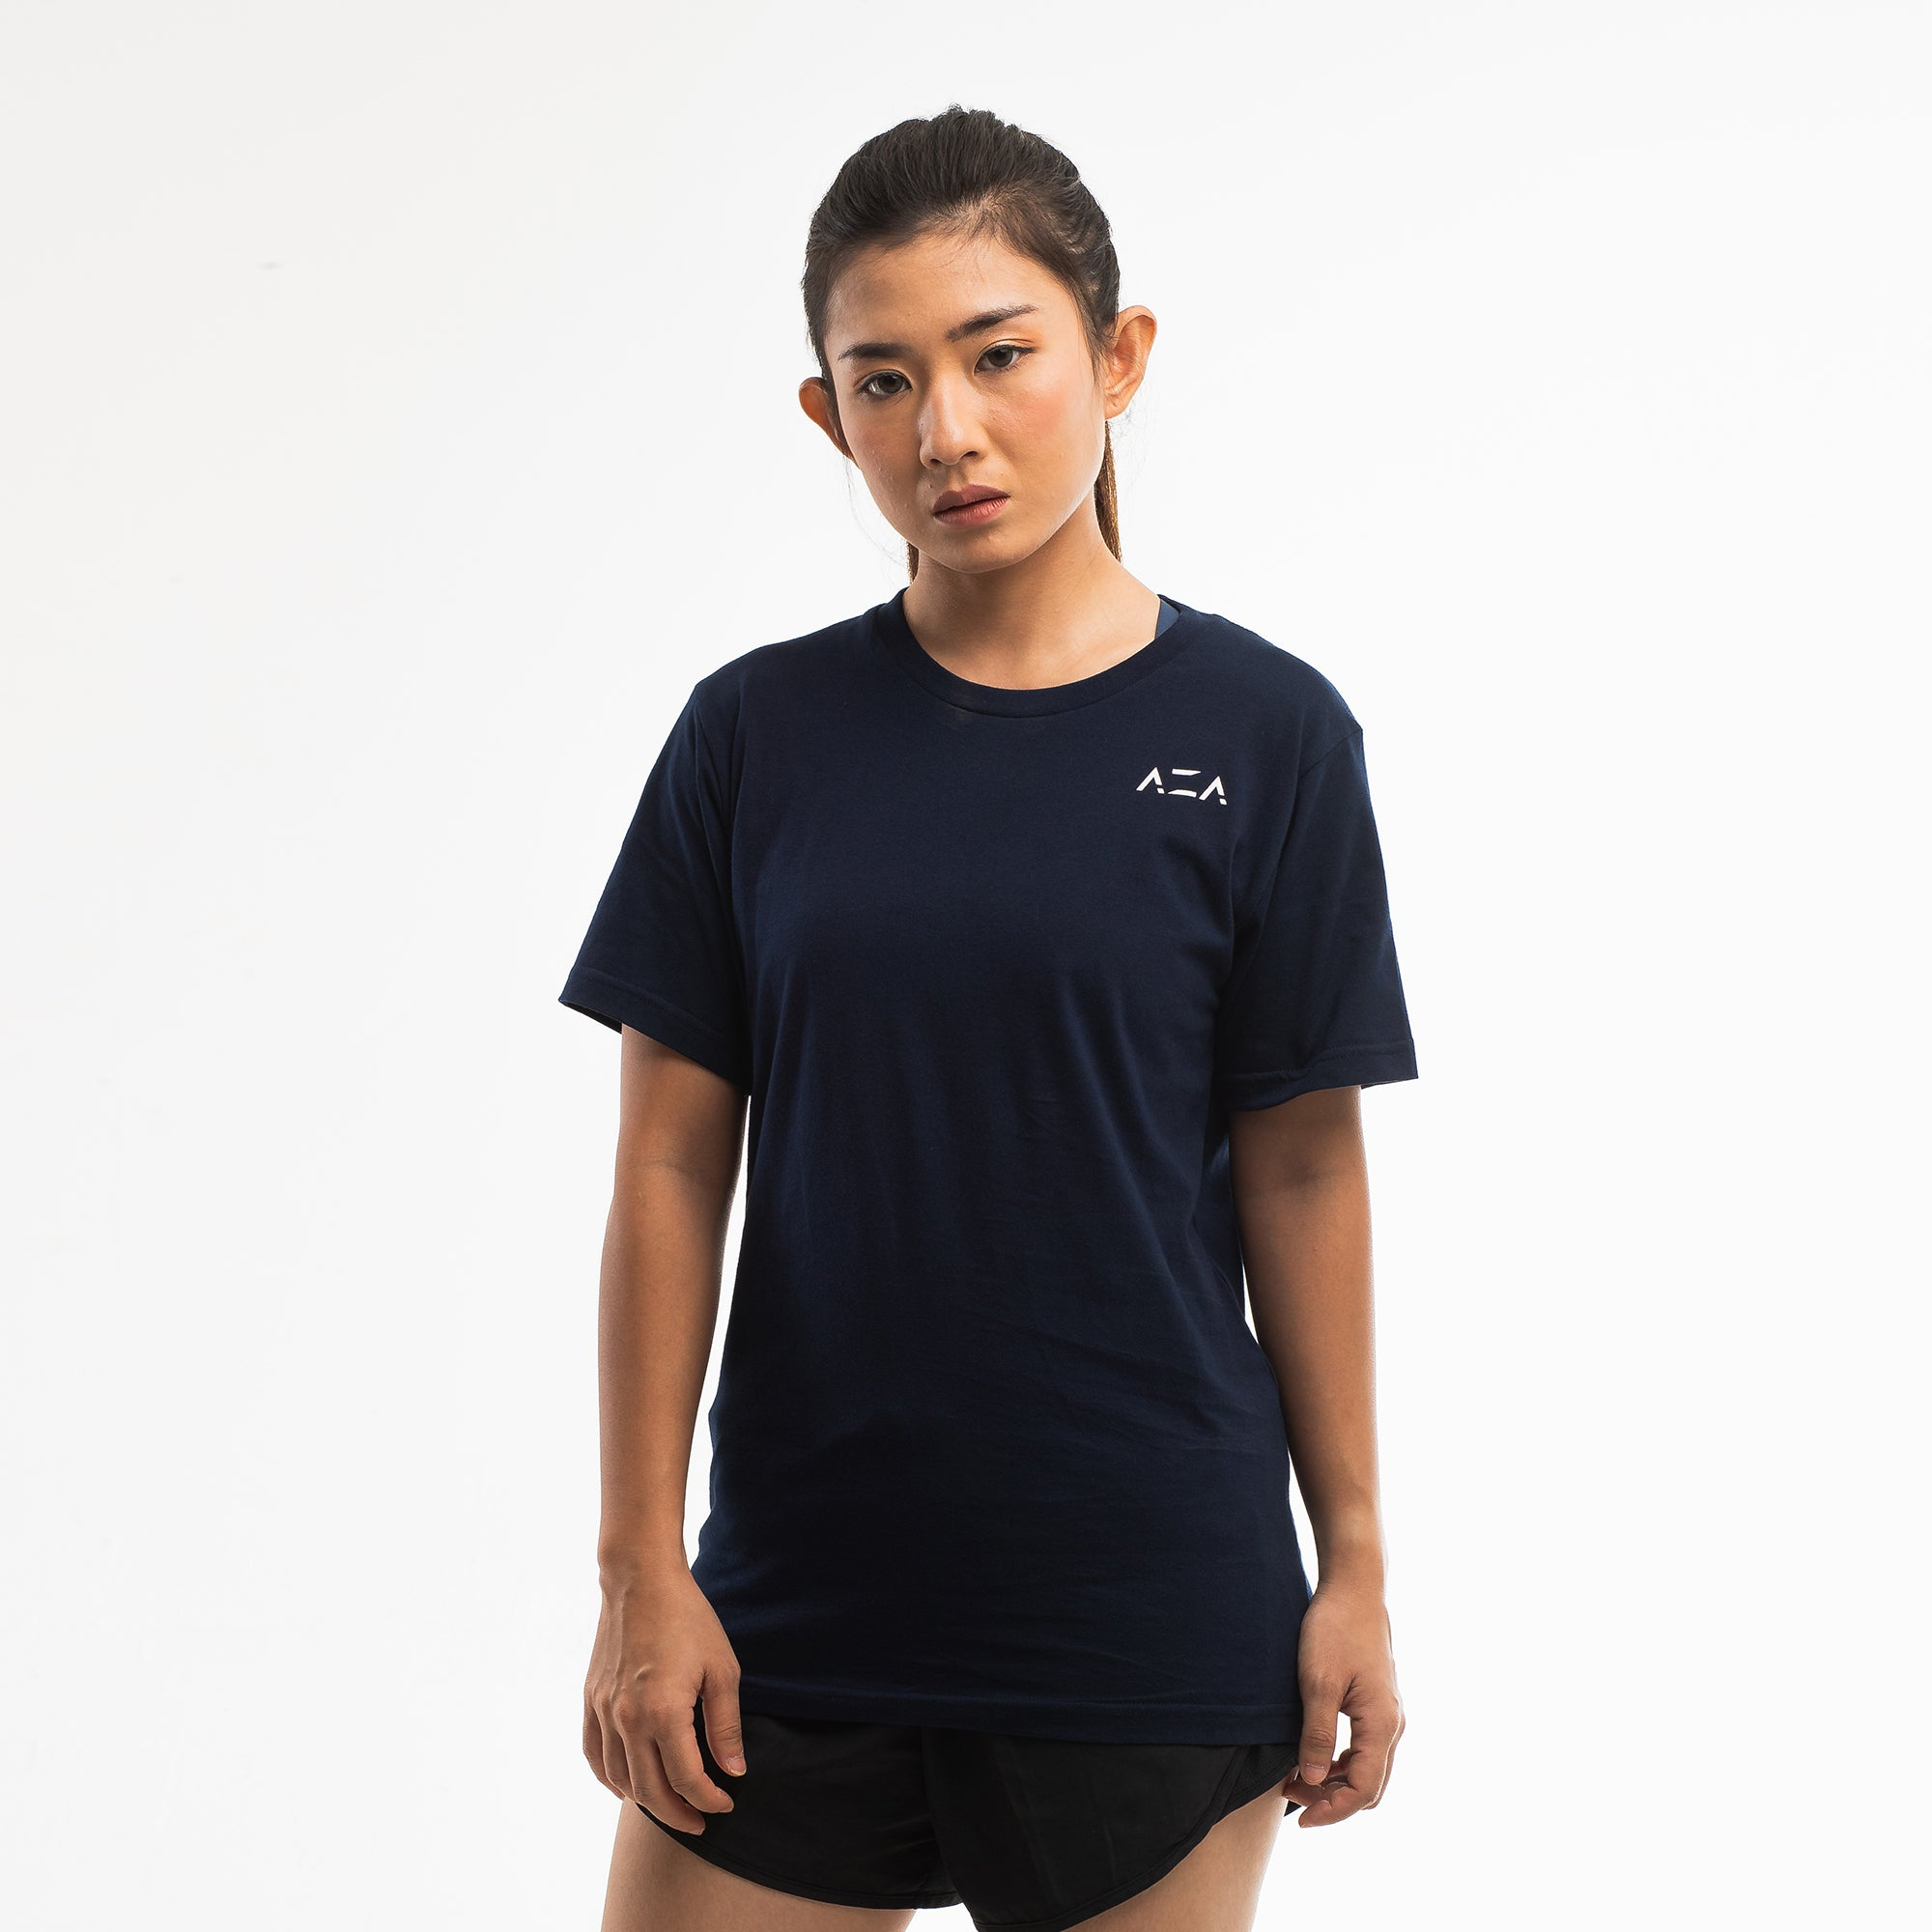 AZA Escape T-Shirt - Navy